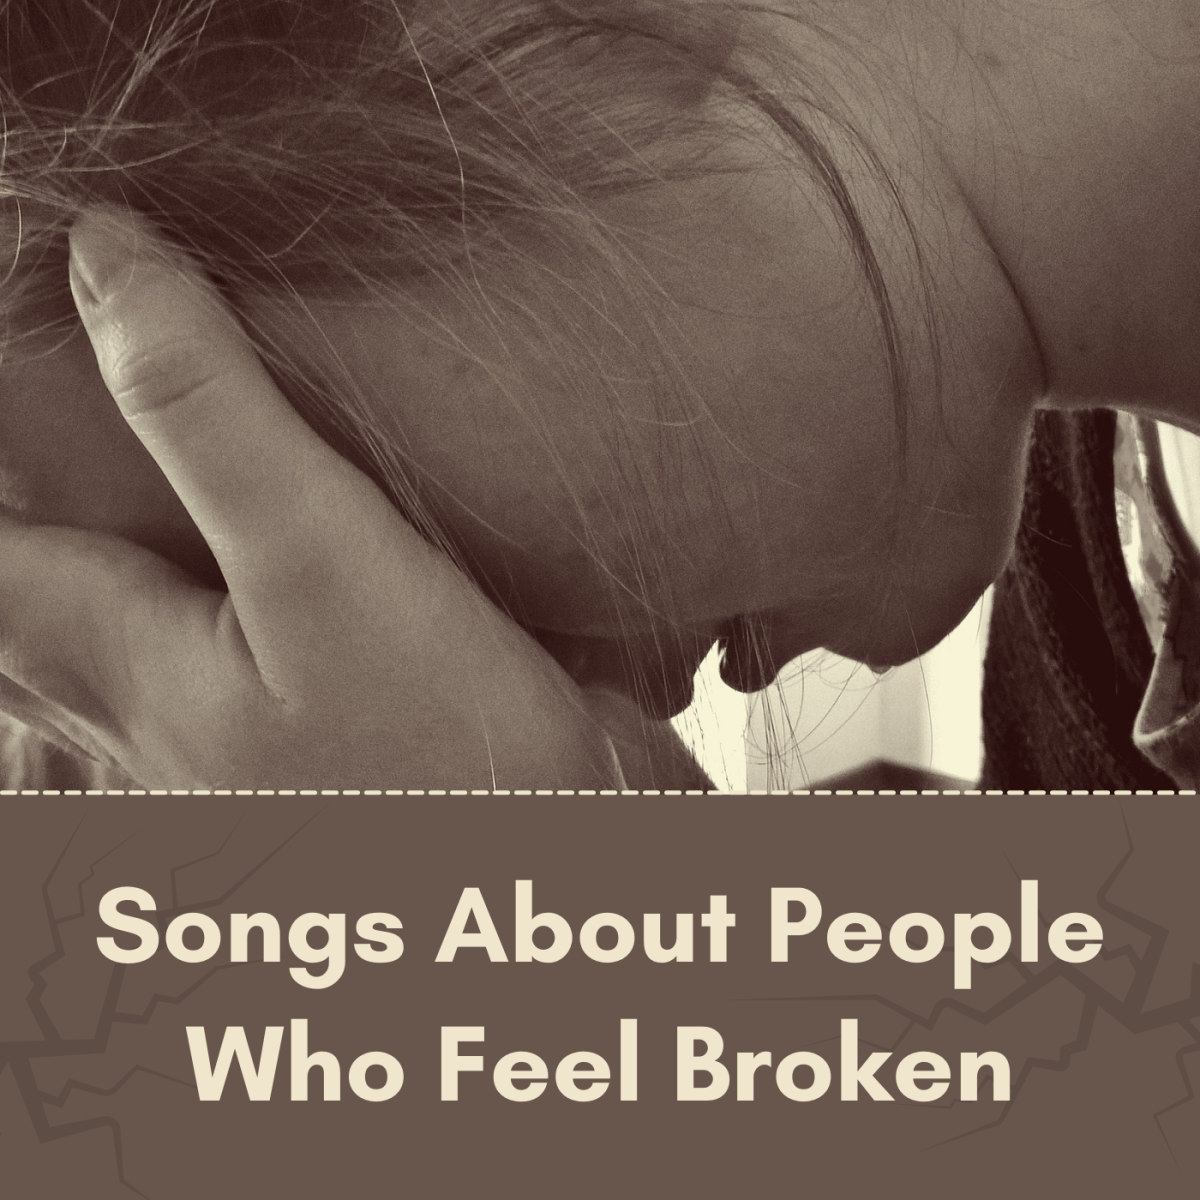 If you feel burned out, emotionally damaged, or like you've lost your way, you're not alone. Make a playlist of pop, rock, and country songs about people who feel broken. Remember that you're never beyond repair.